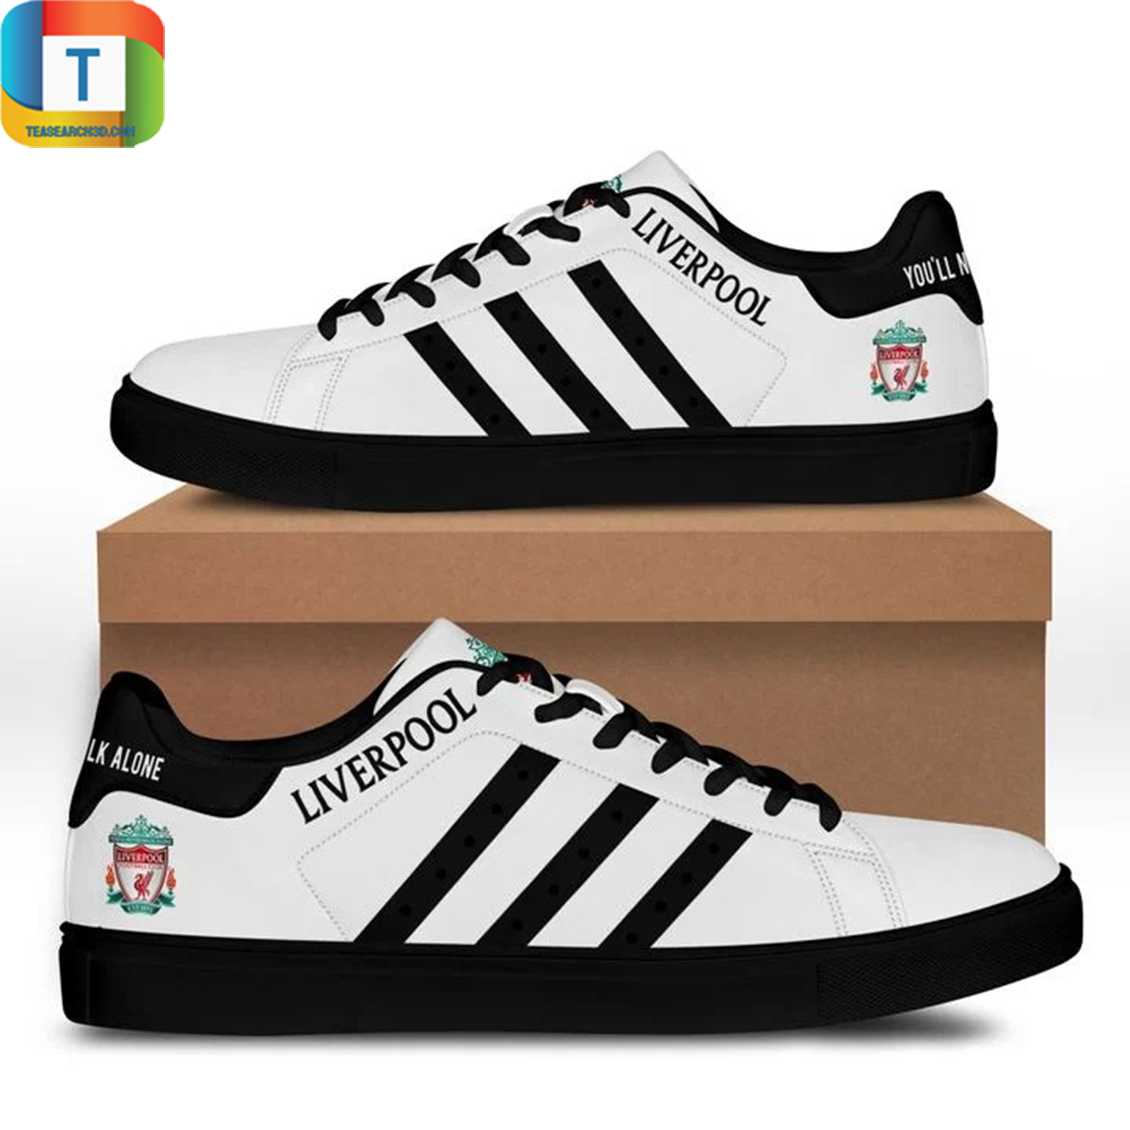 Liverpool stan smith low top shoes 3